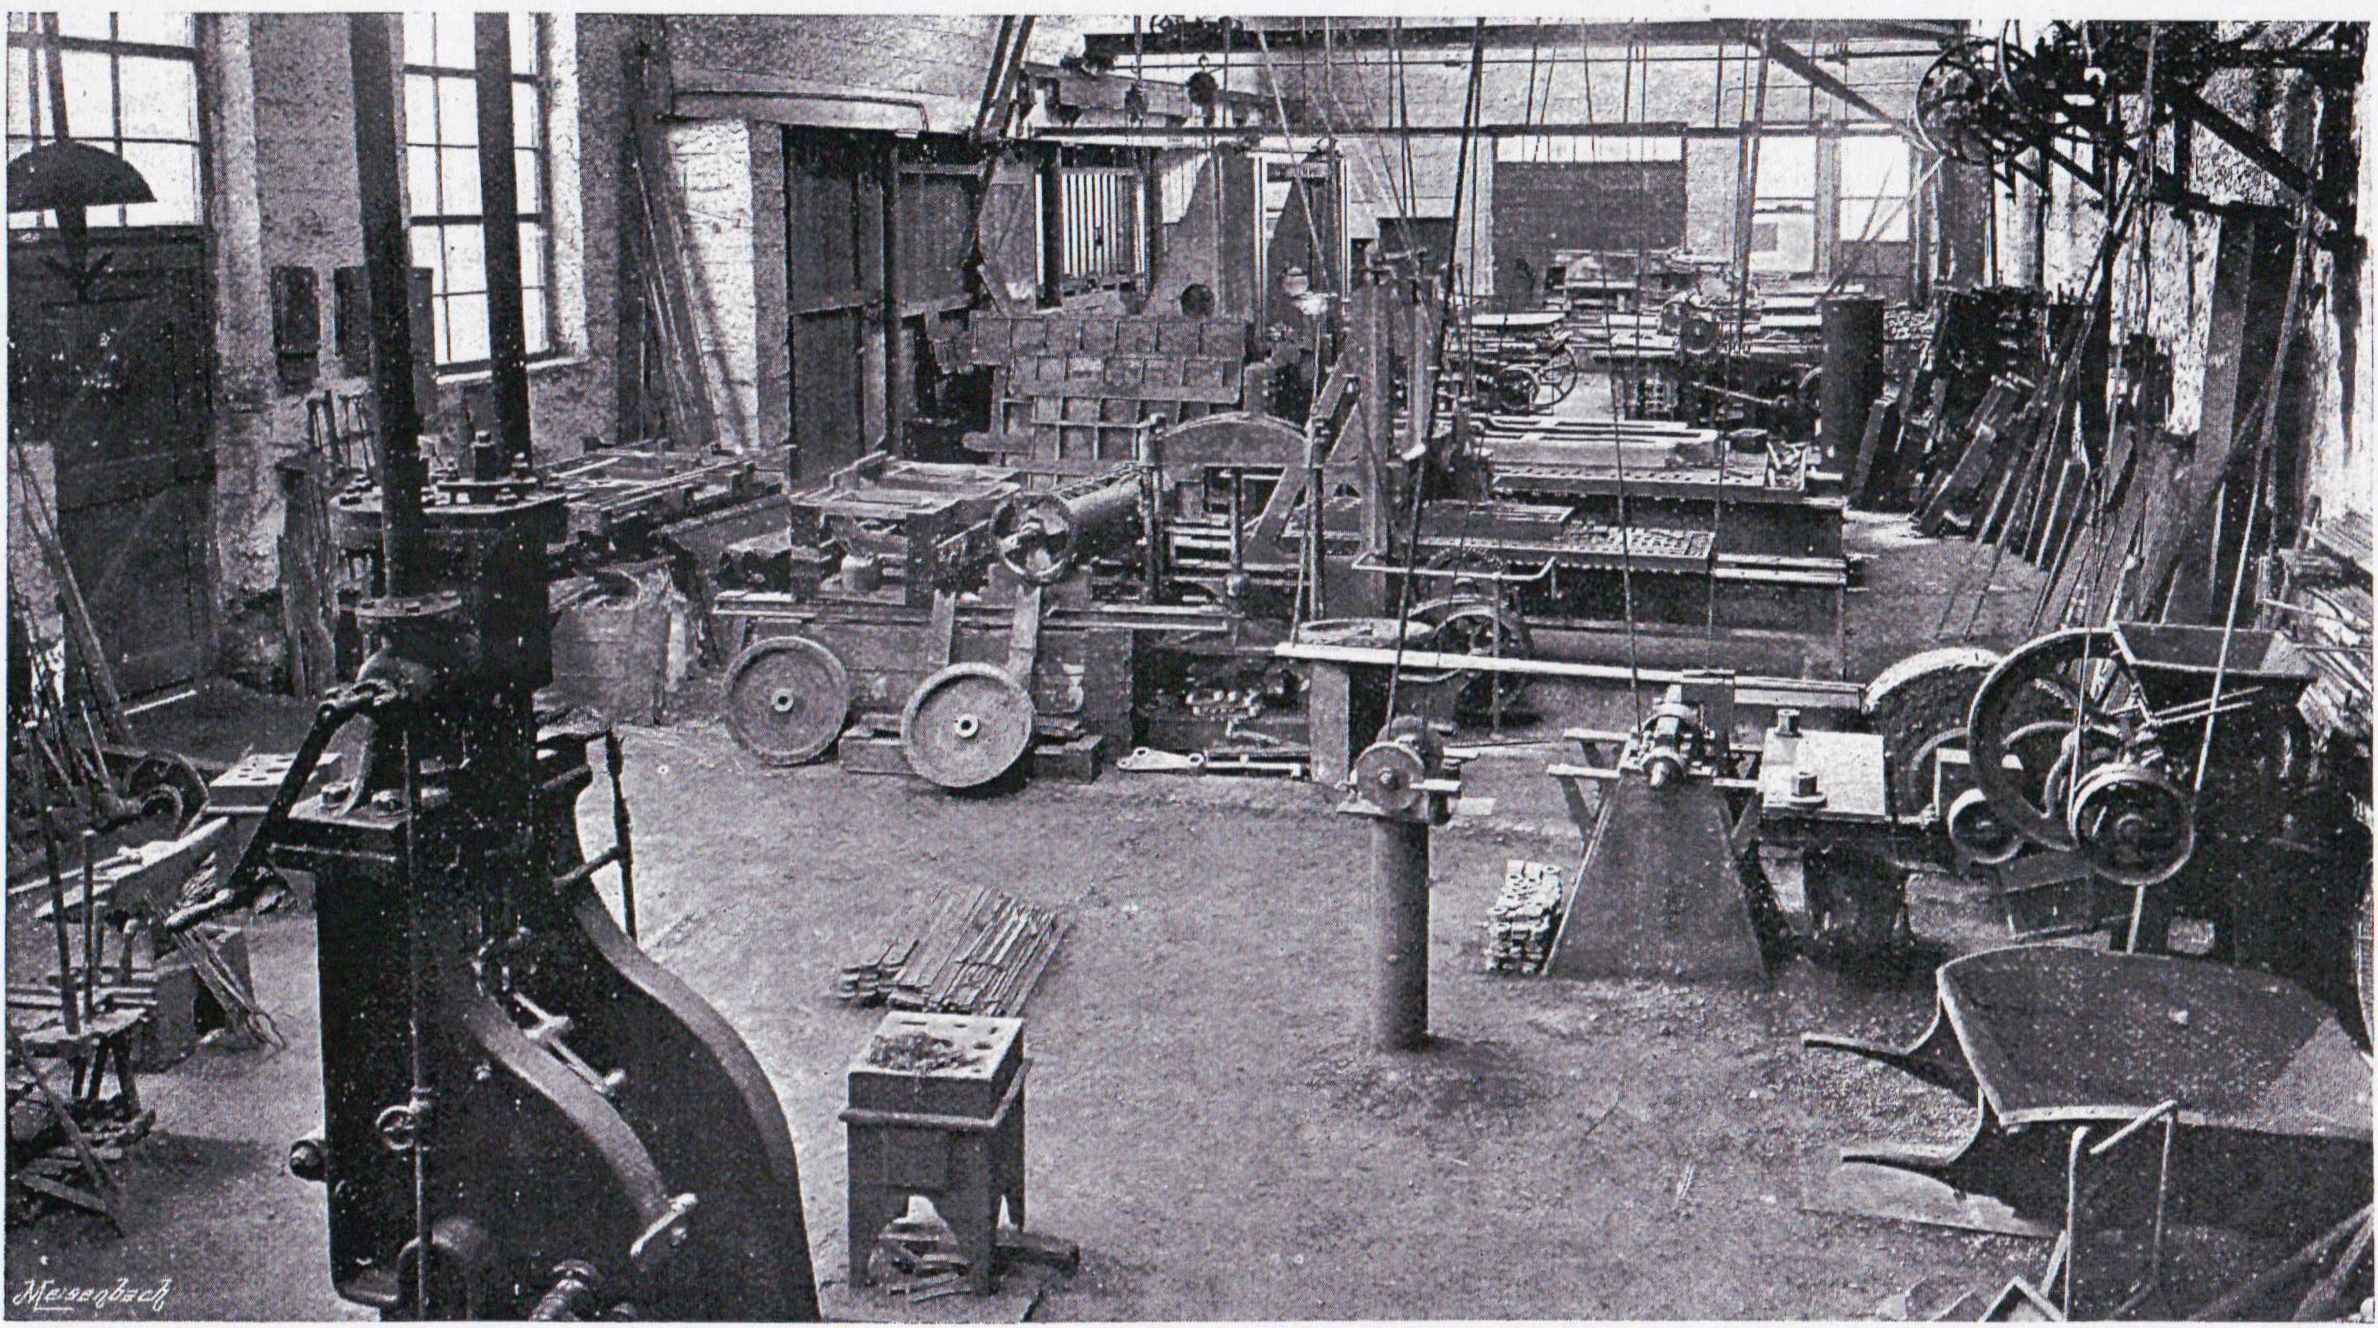 Large Planing Machine with Portion of Forge